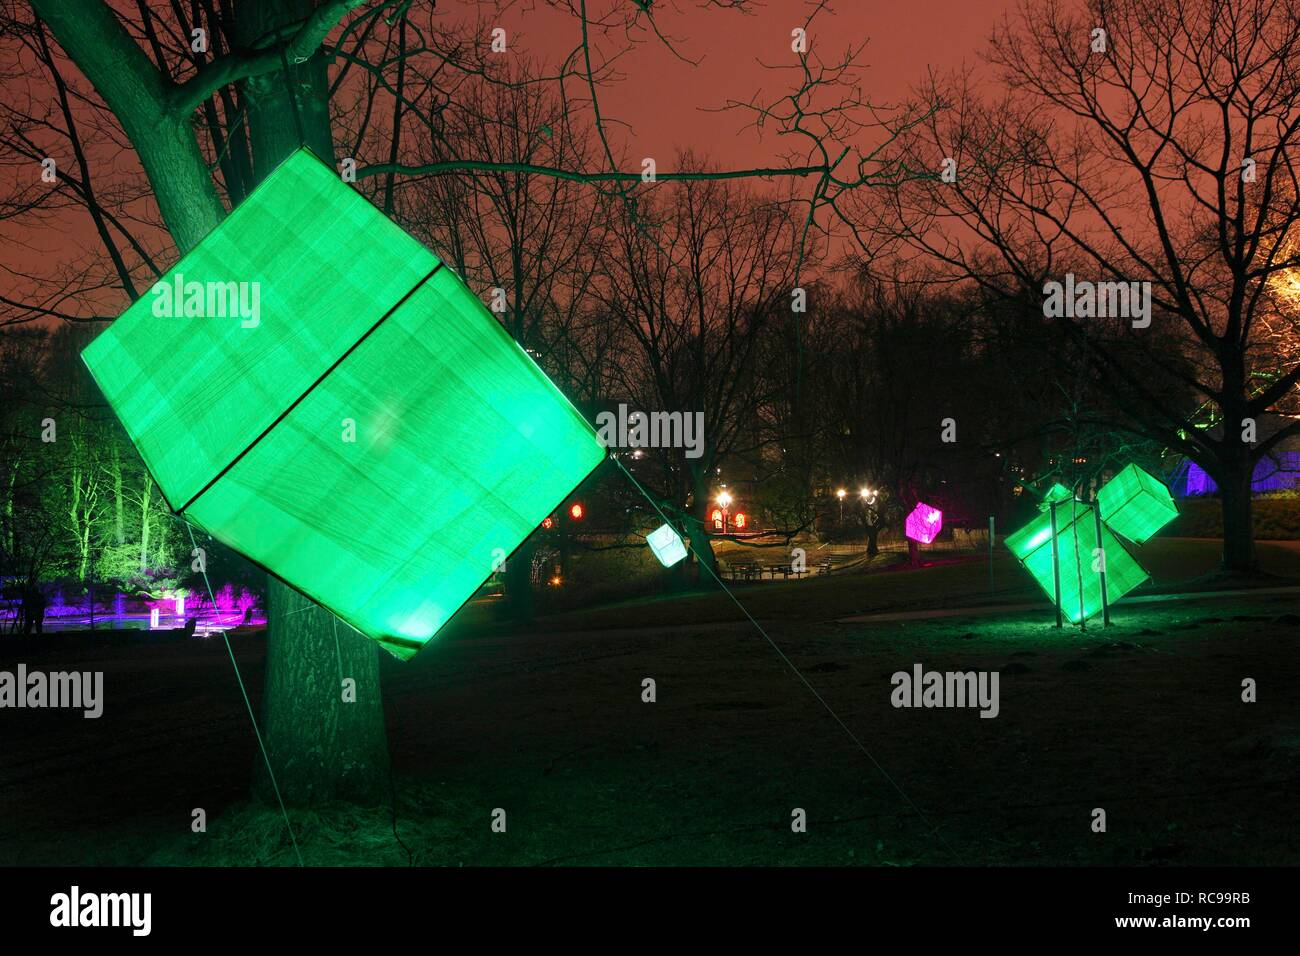 Artistic light installation in Gruga Park, park lighting, art action, Essen, North Rhine-Westphalia - Stock Image